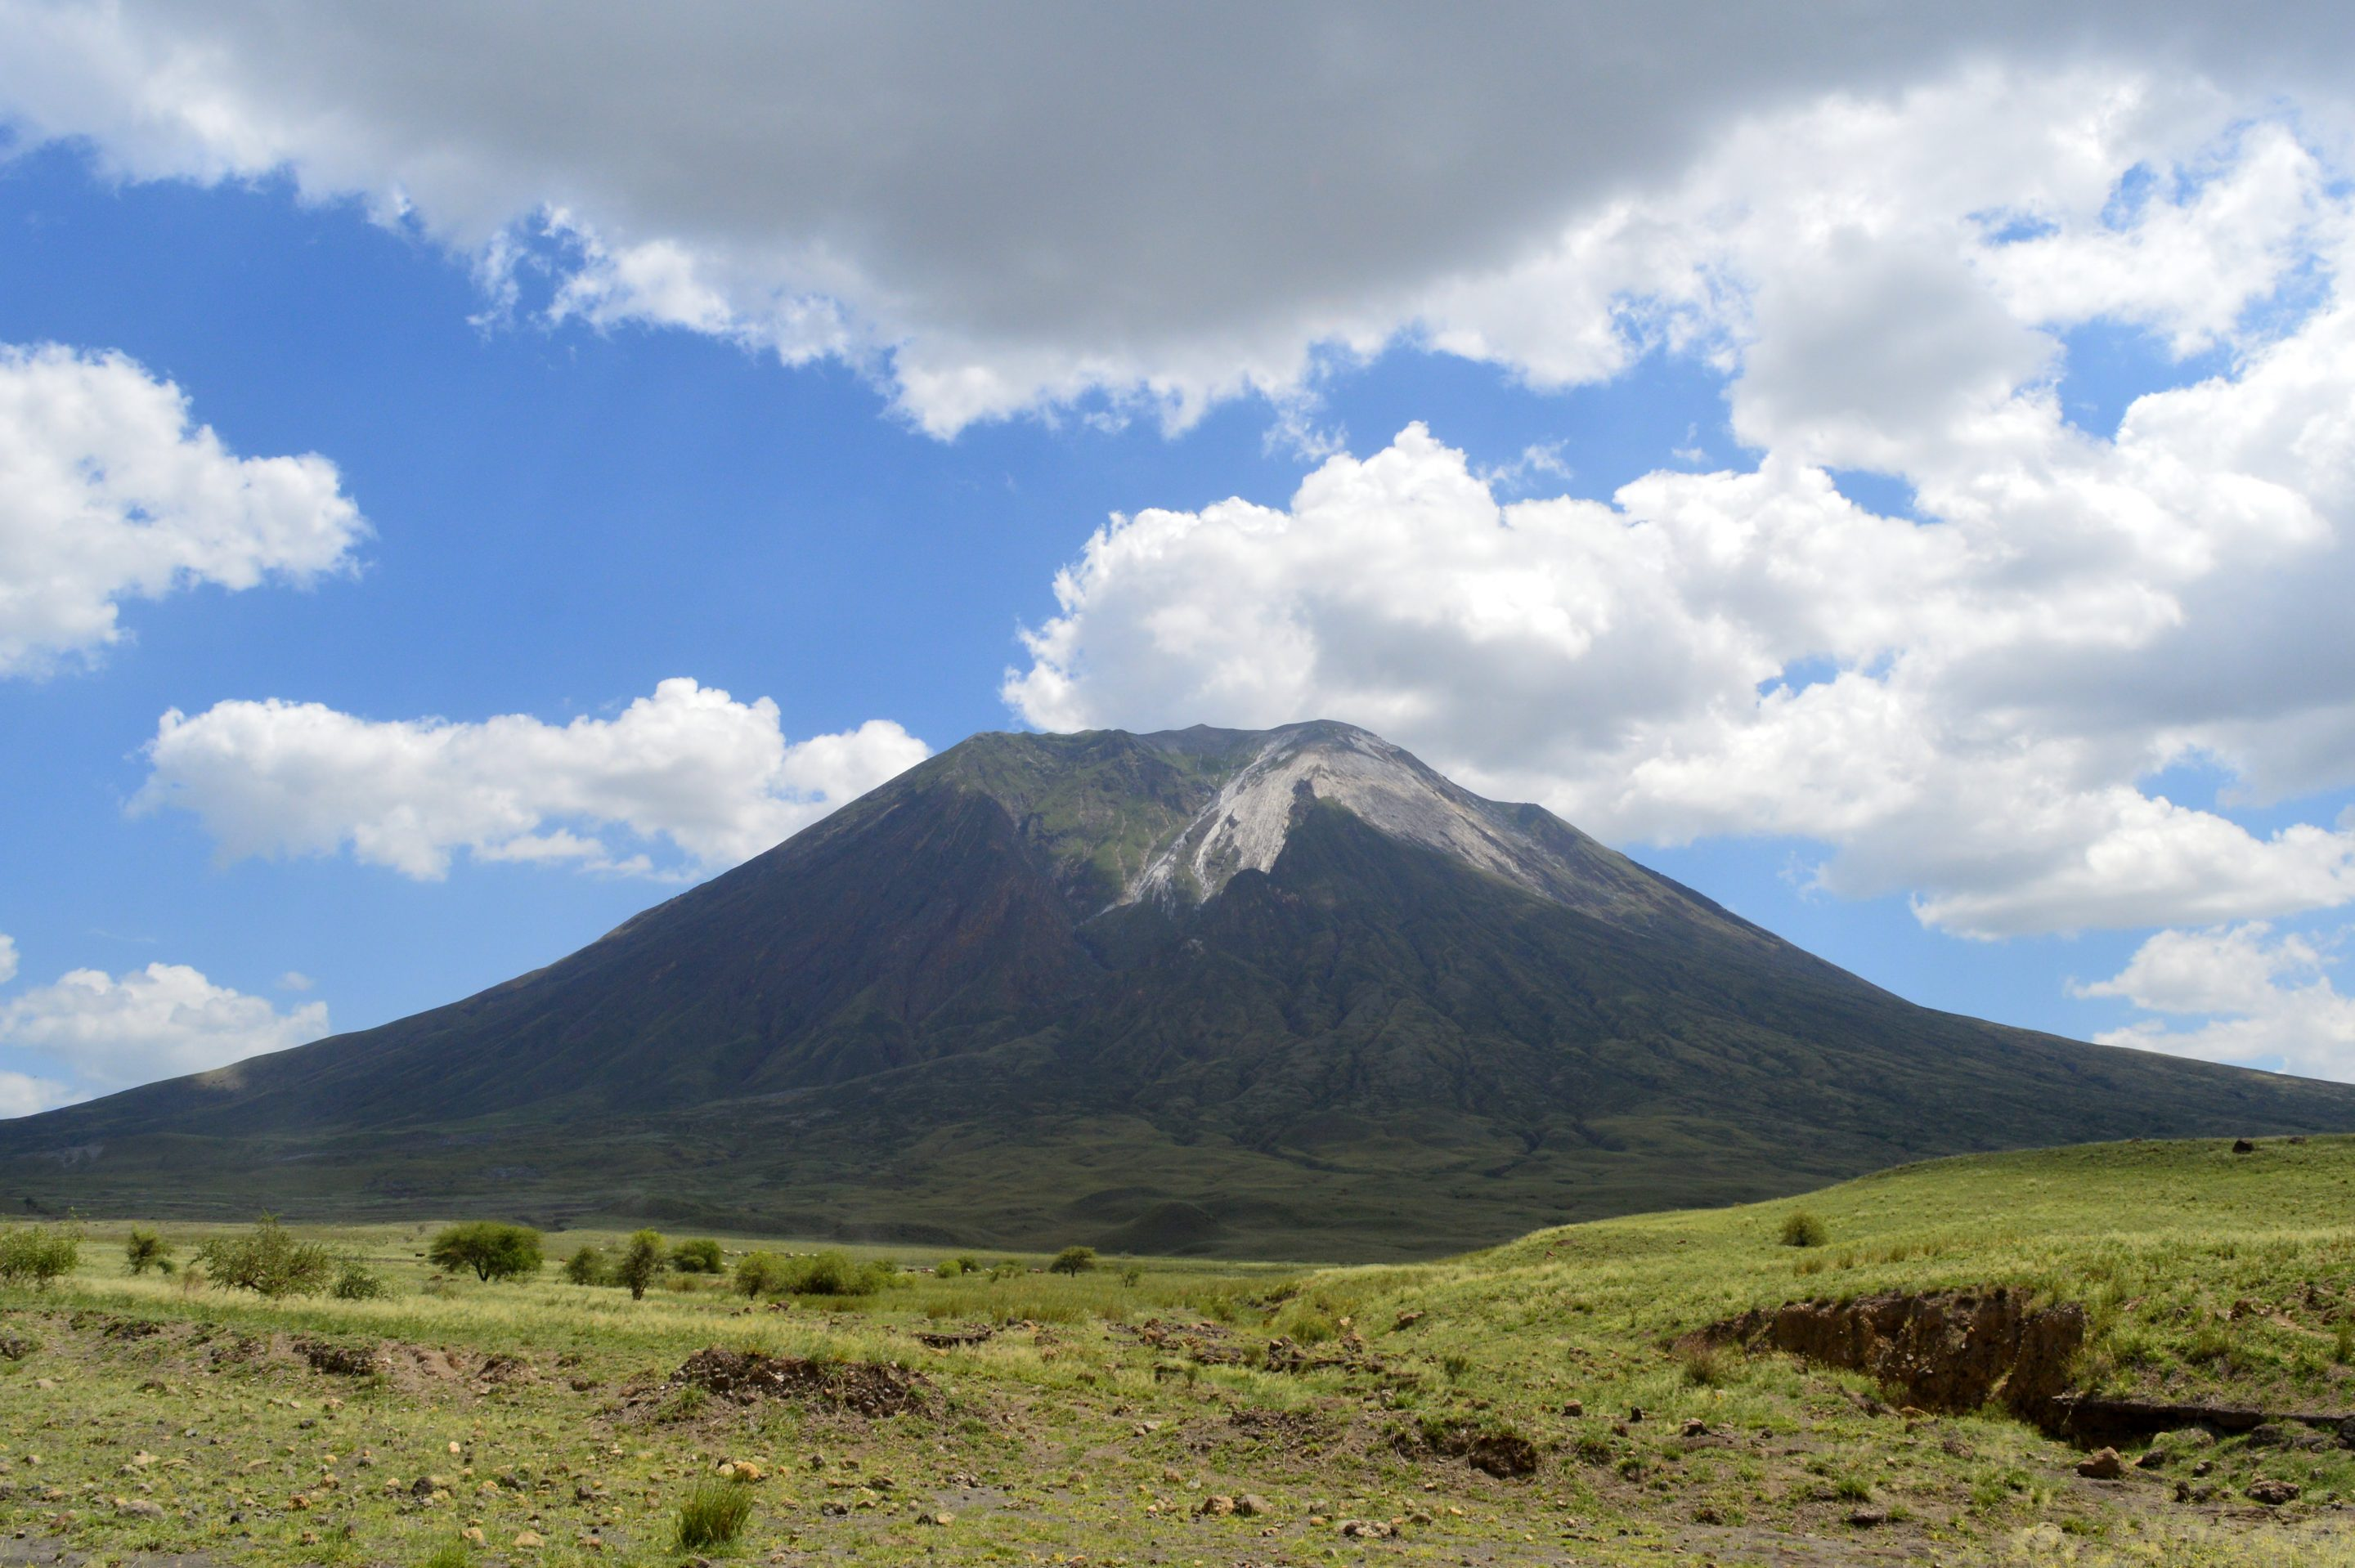 Masai Mountain of God